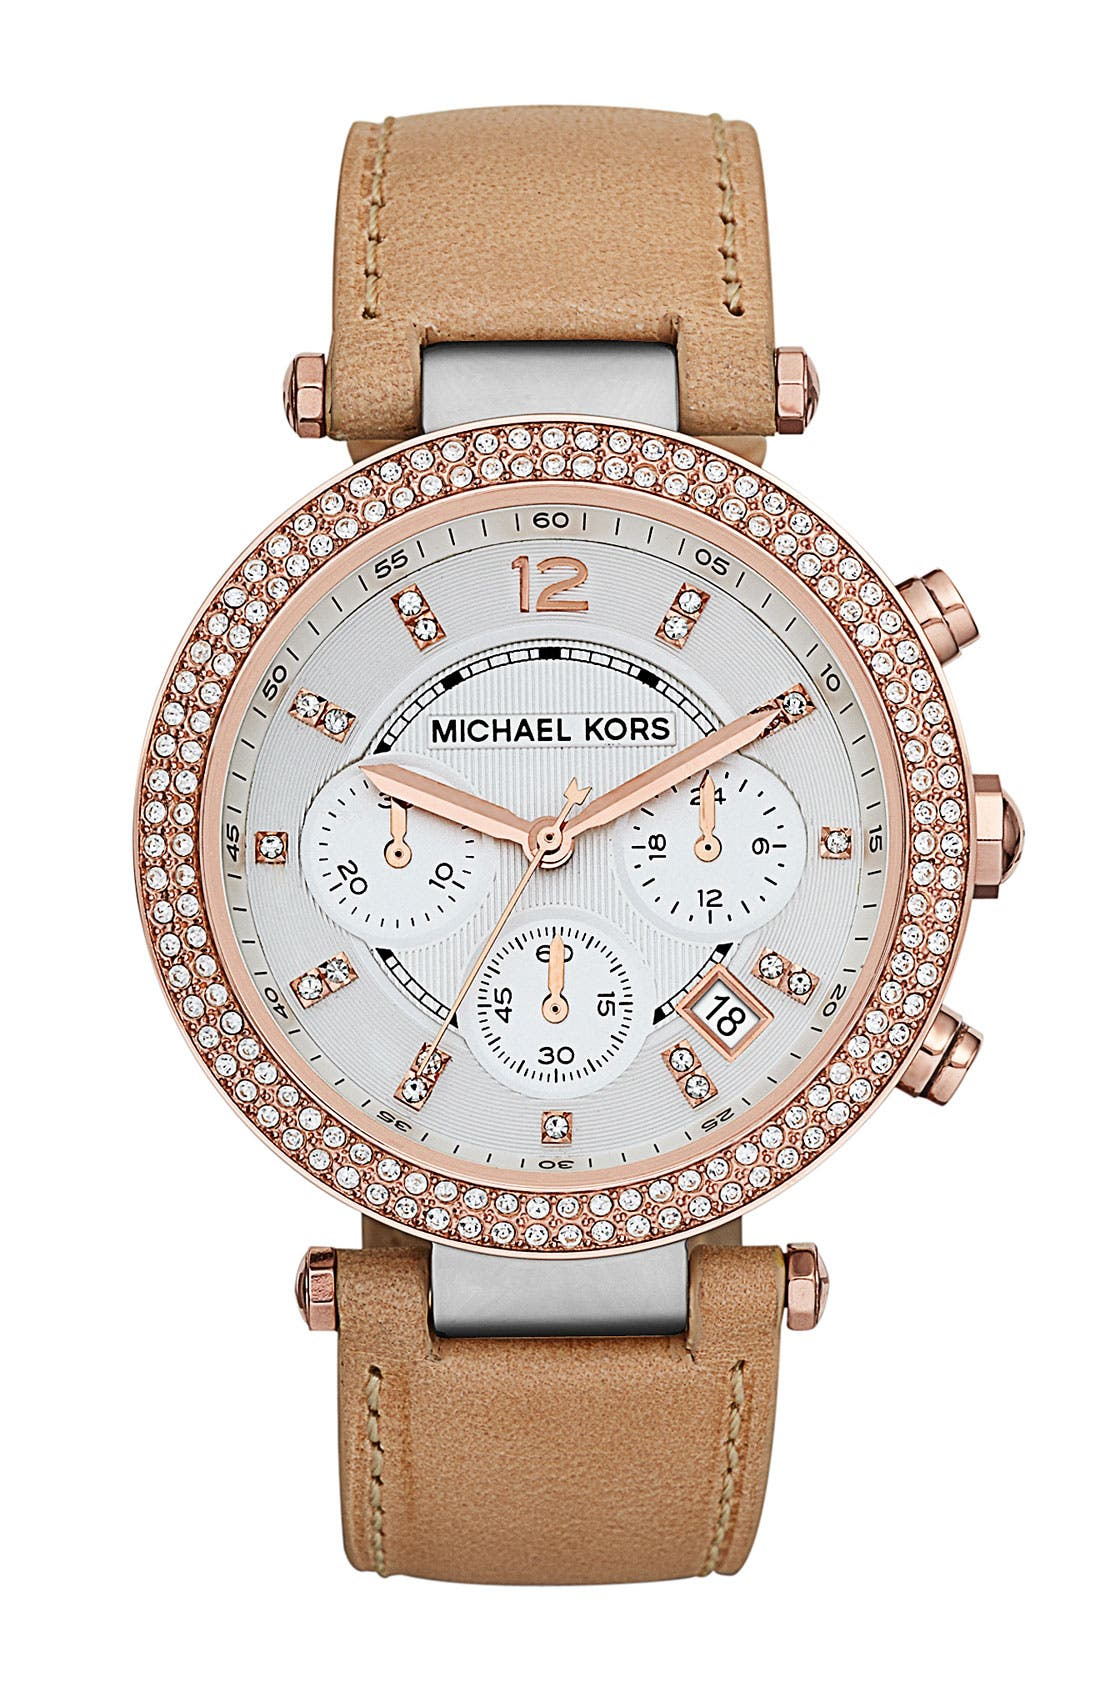 Main Image - Michael Kors 'Parker' Chronograph Leather Watch